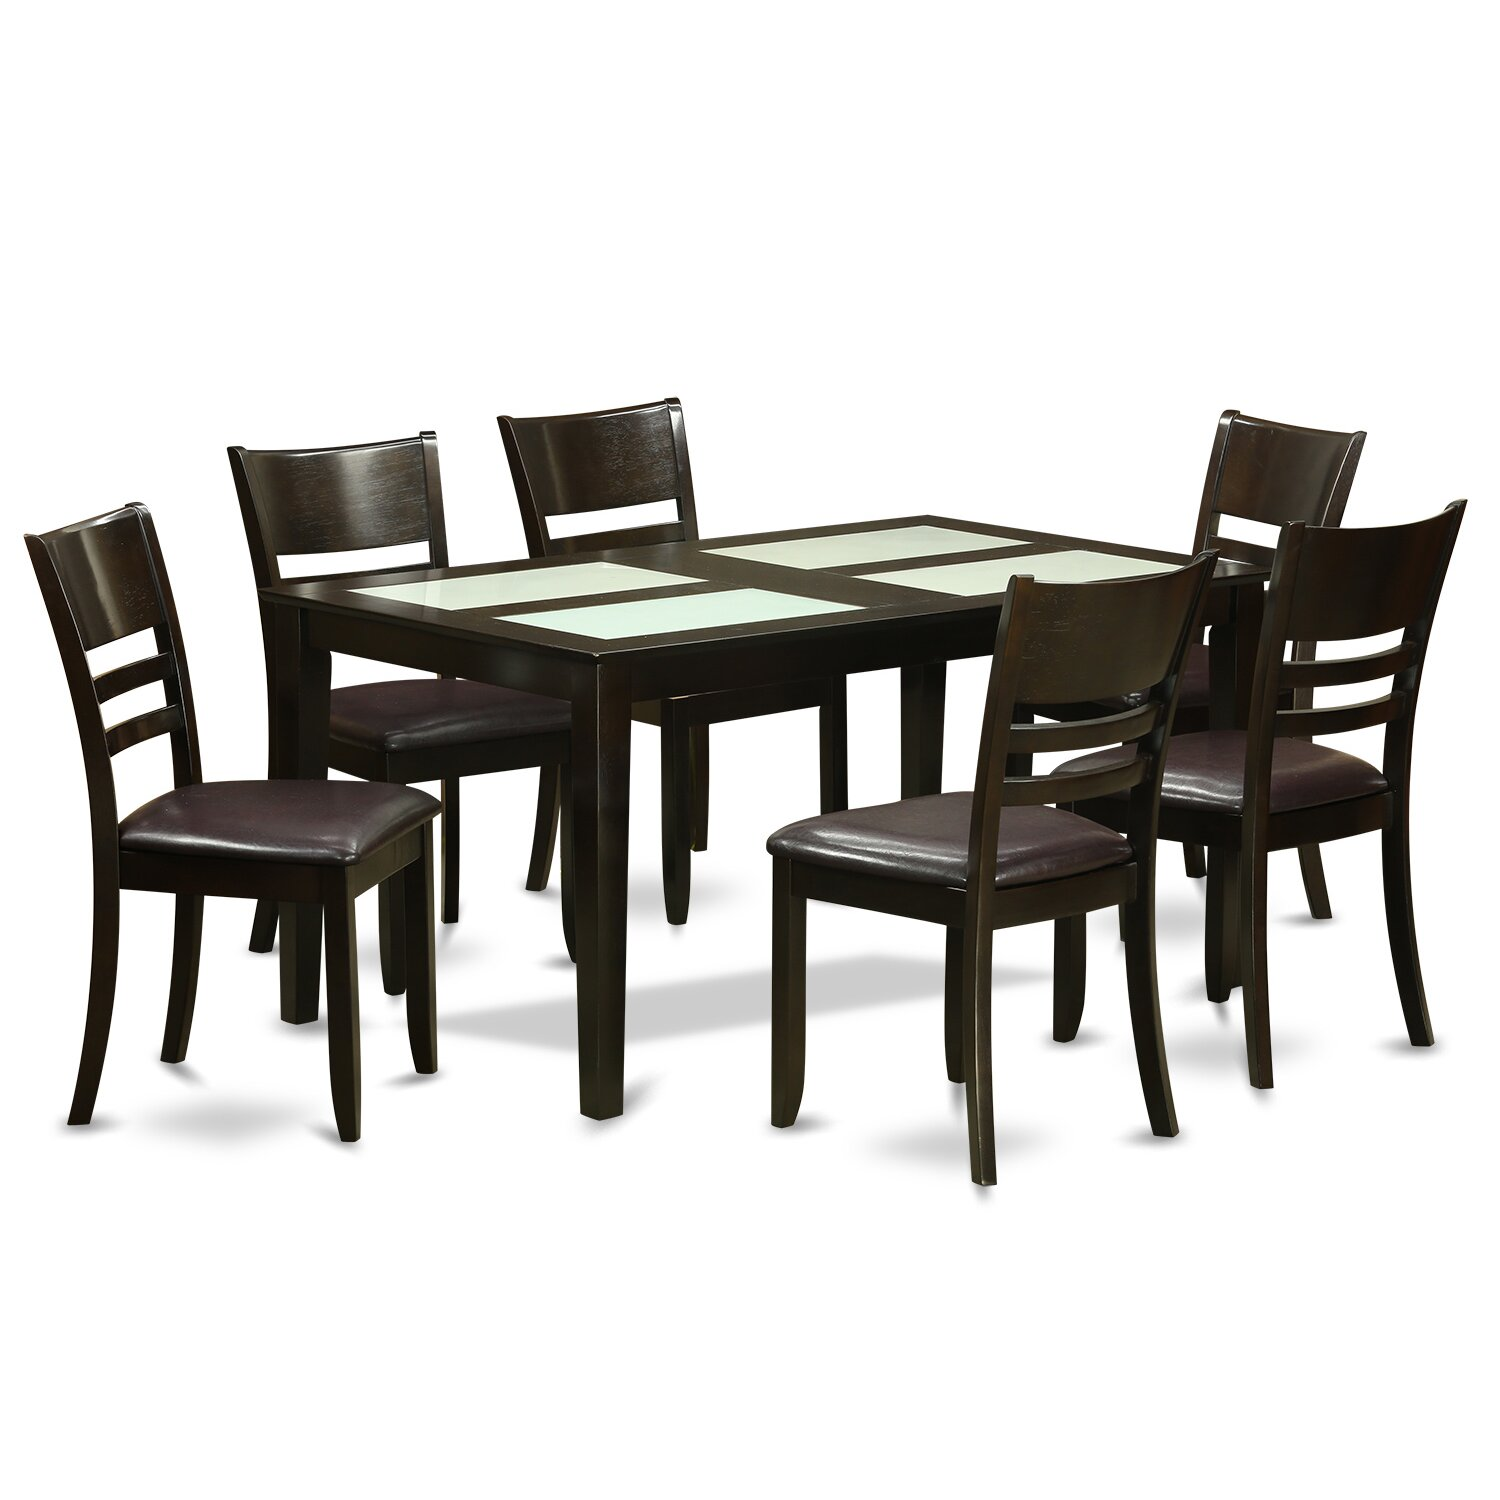 Wooden importers capri 7 piece dining set wayfair for 7 piece dining room set